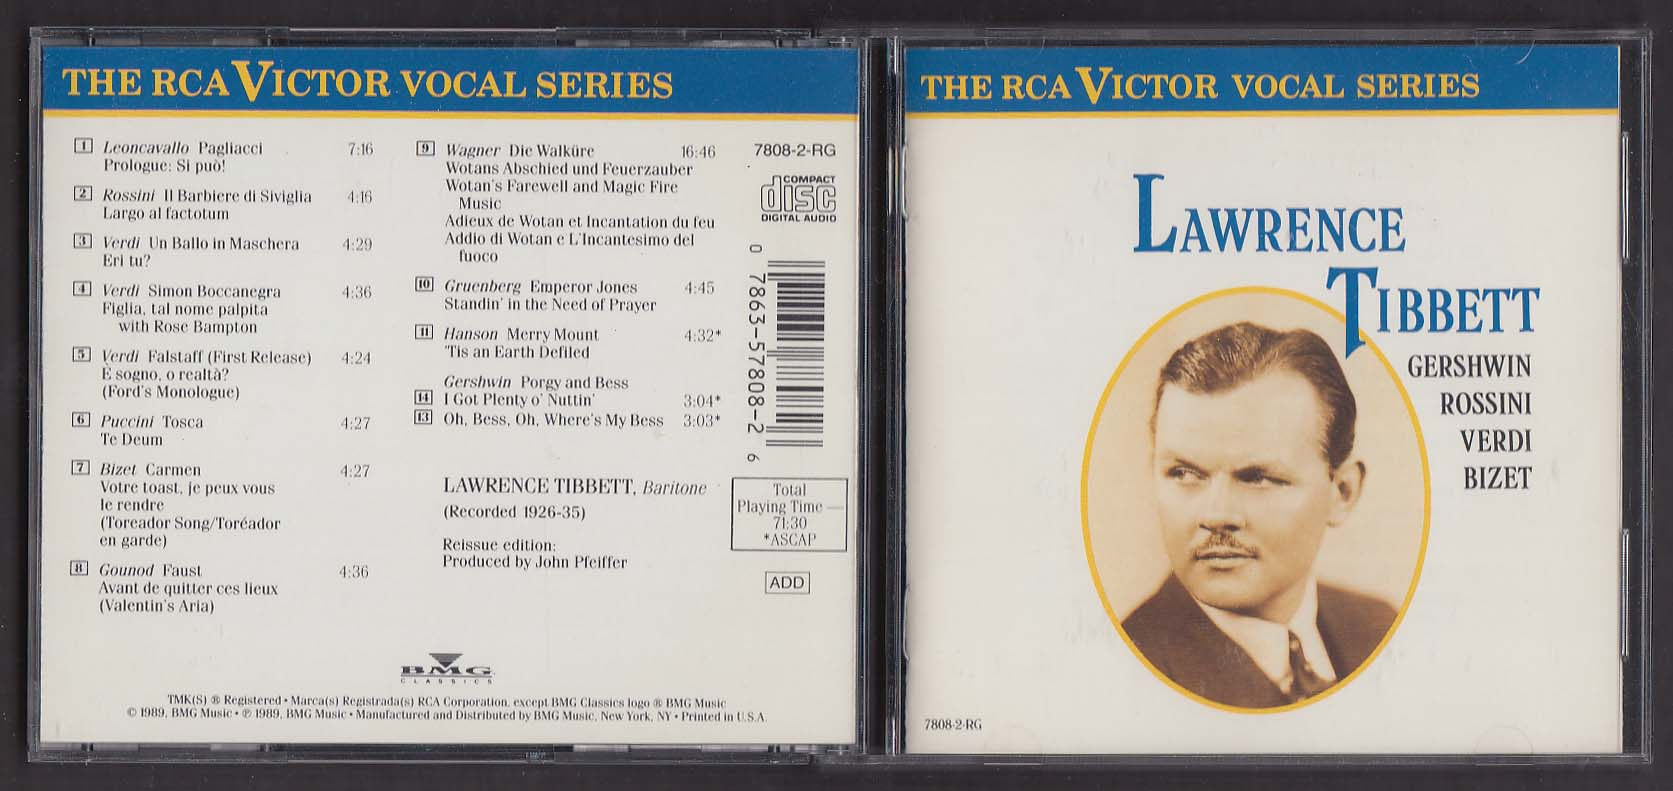 Image for Lawrence Tibbett Gershwin Rossini Verdi Bizet 7808-2-RG RCA Victor CD 1989